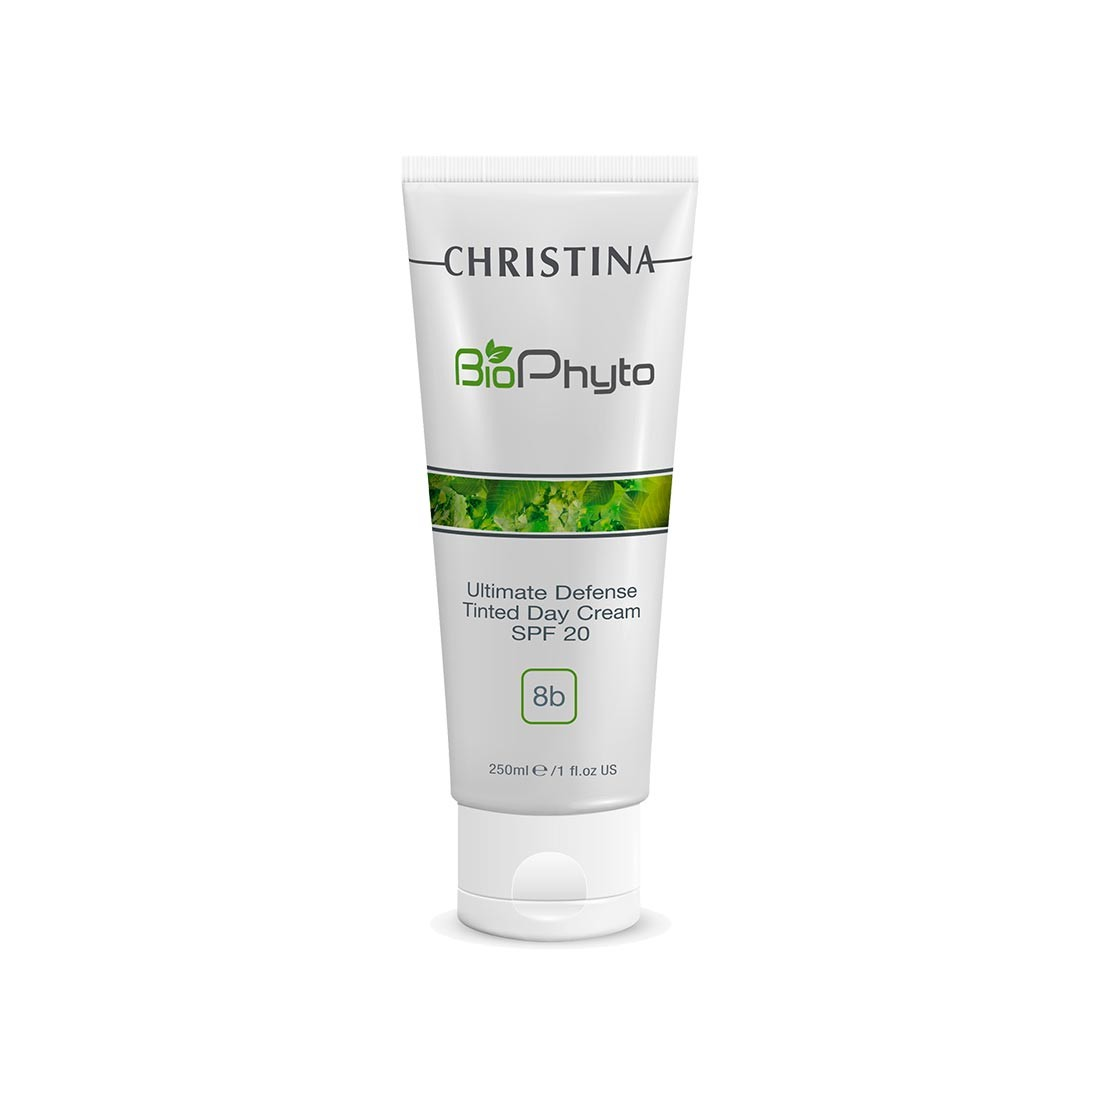 Christina Дневной крем Абсолютная защита SPF 20 с тоном Bio Phyto Ultimate Defense Tinted Day Cream SPF 75 мл дневной уход christina step 8b ultimate defense tinted day cream spf20